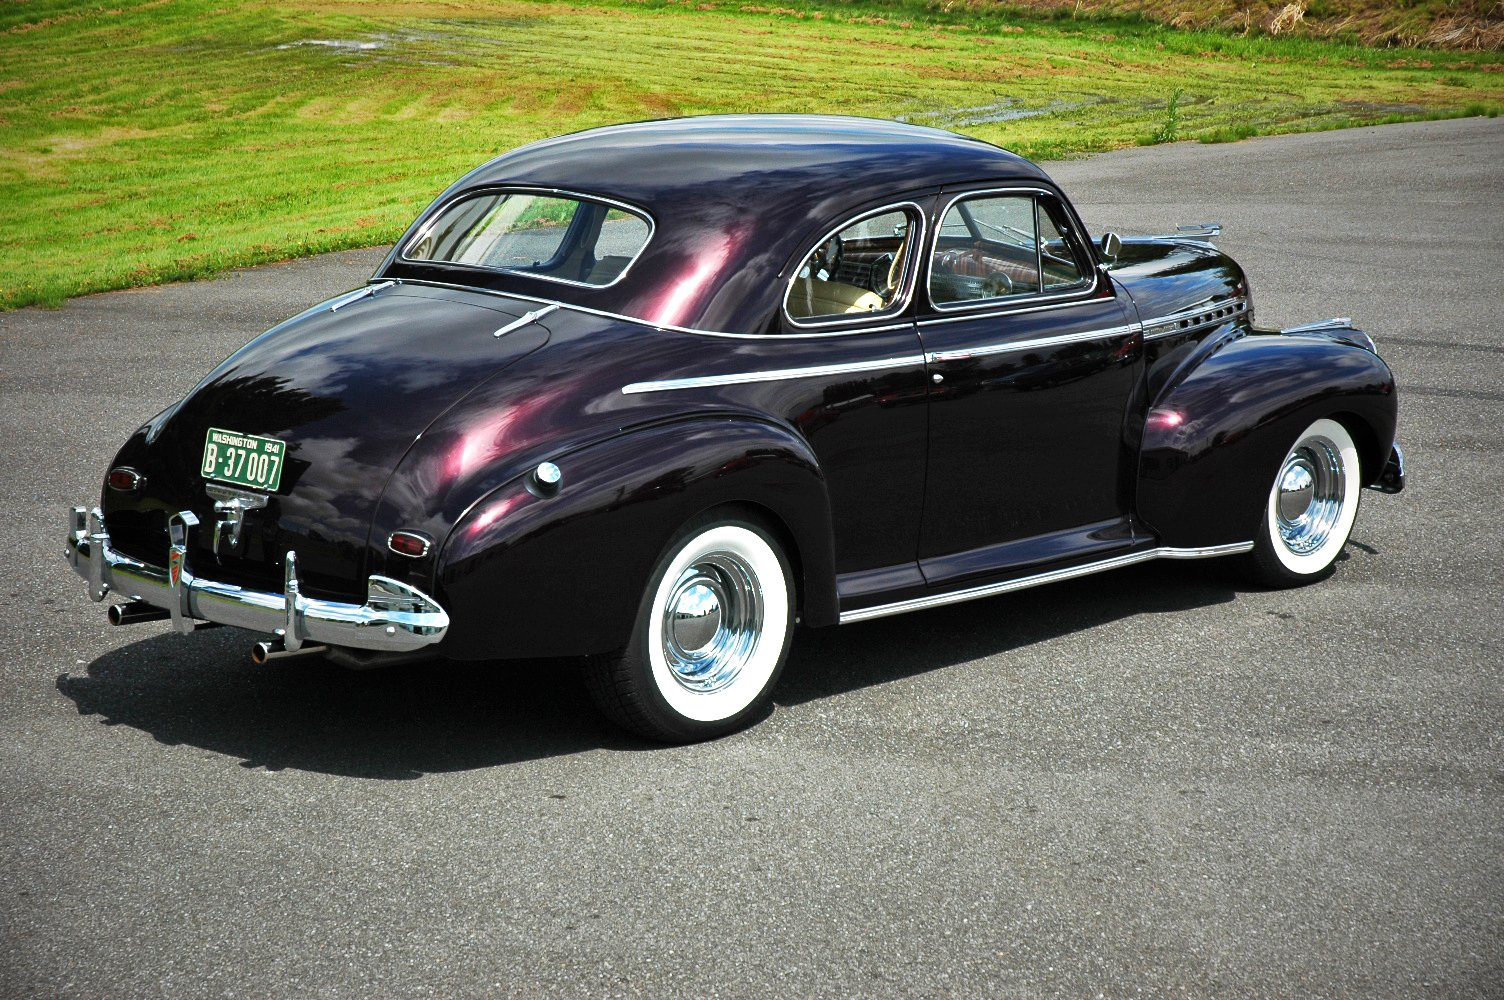 Chevy Vehicles 1941 Chevrolet Chevy Coupe Special Deluxe Hotrod Hot Rod ...